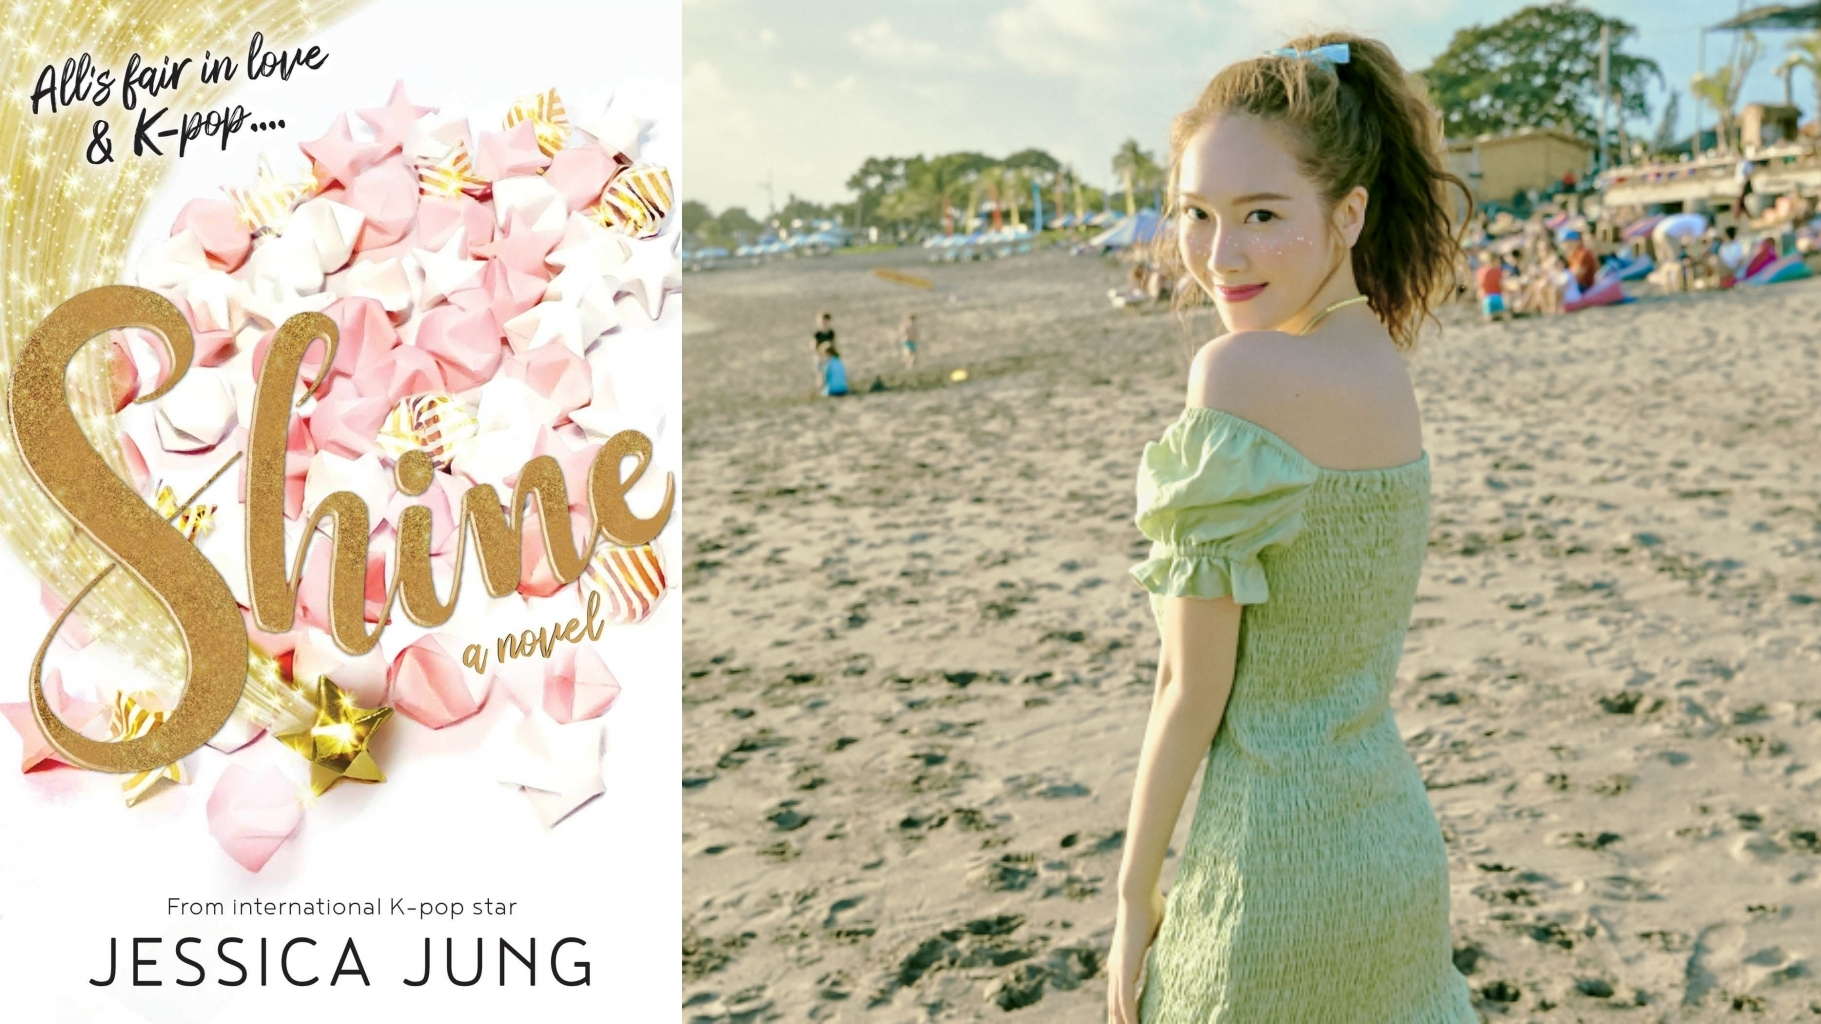 """Jessica Jung's First Novel """"Shine"""" Enters New York Times Best Sellers List"""